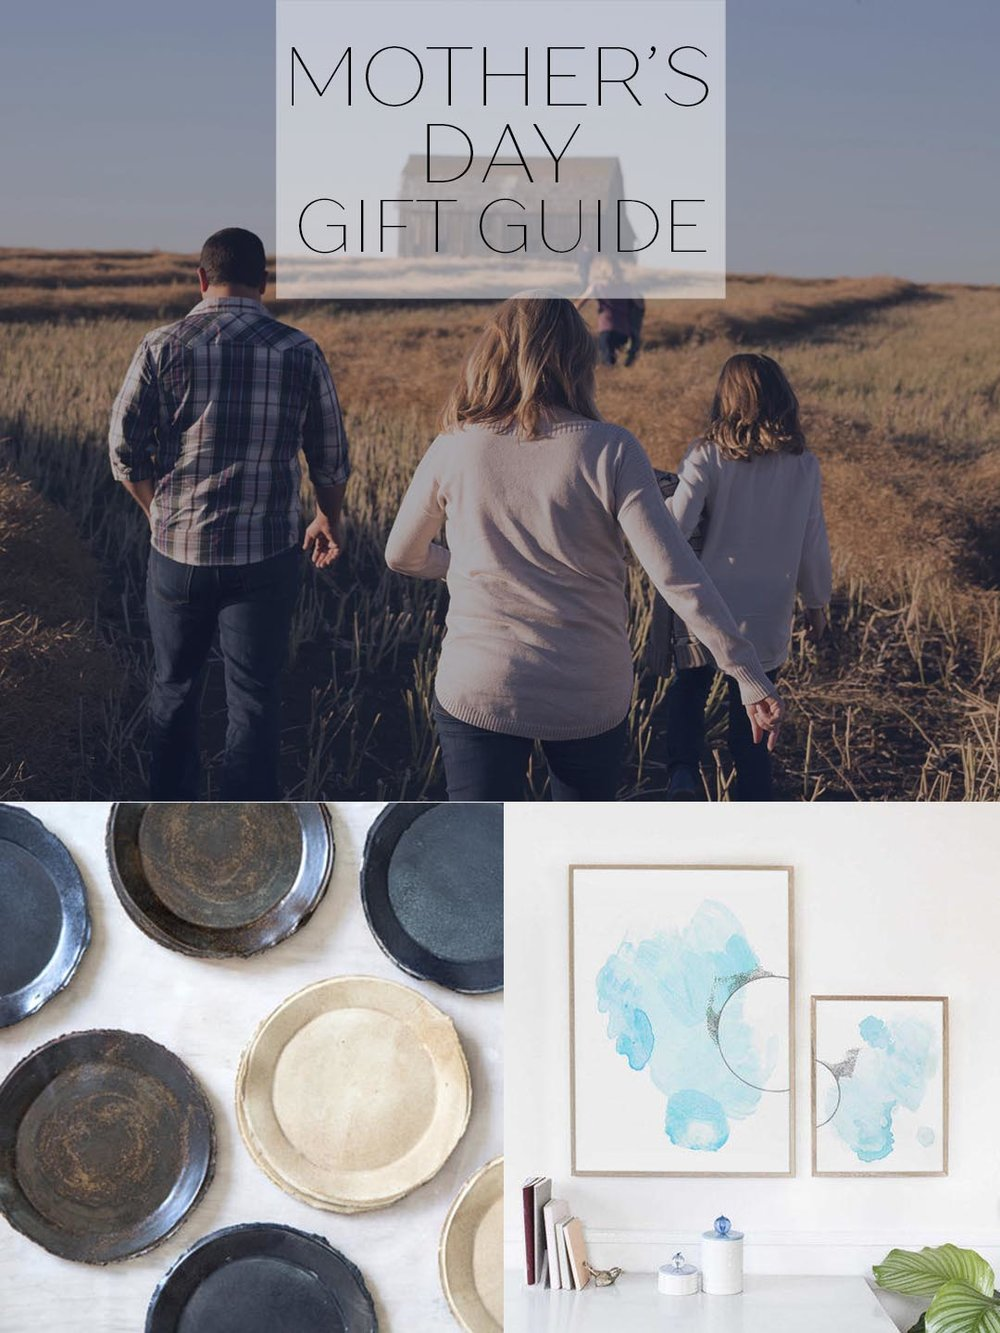 Mother's Day Gift Guide by Adri Luna Studio